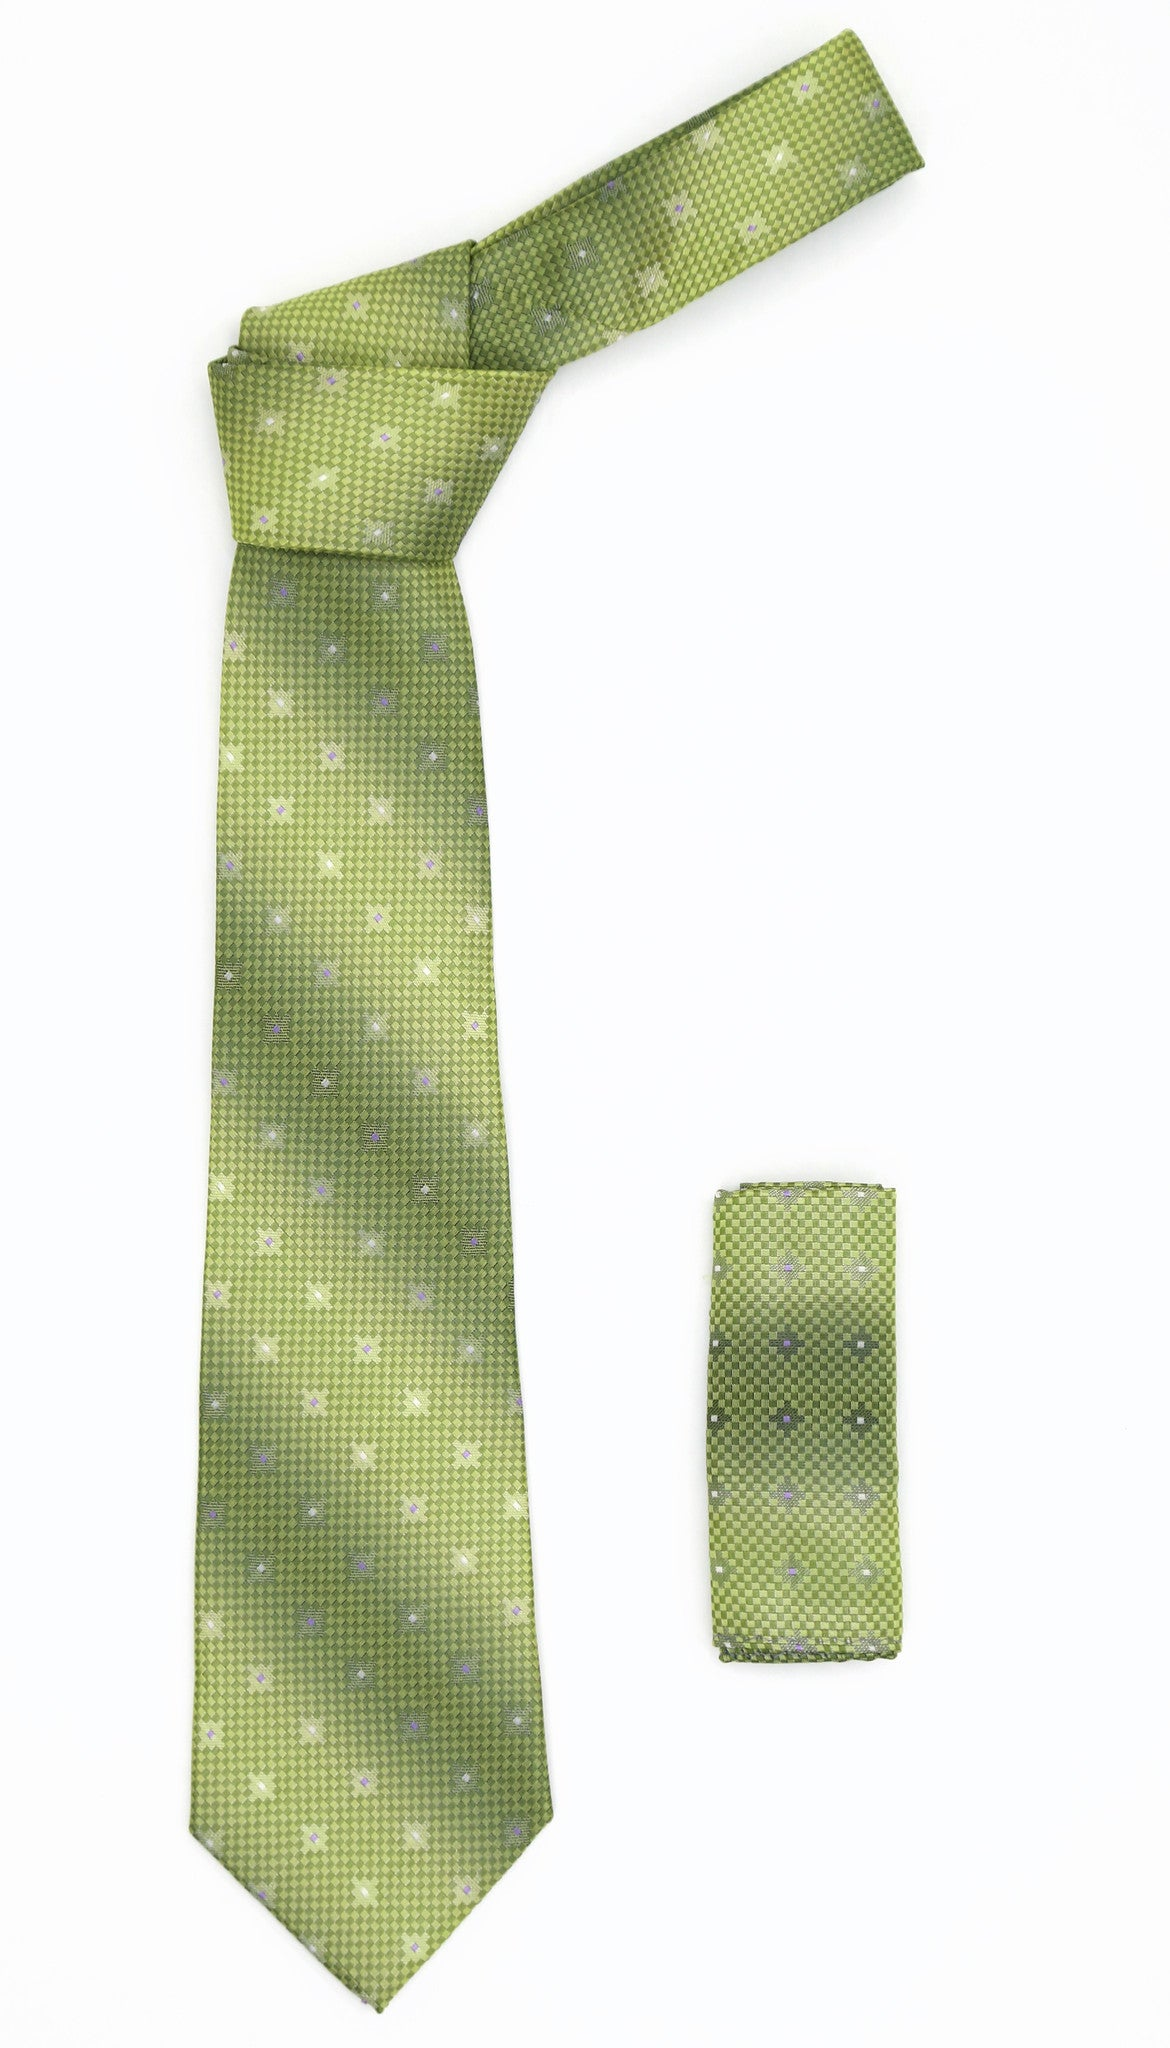 Geometric Olive Green Necktie w. Diamond Shaped Pattern Hanky Set